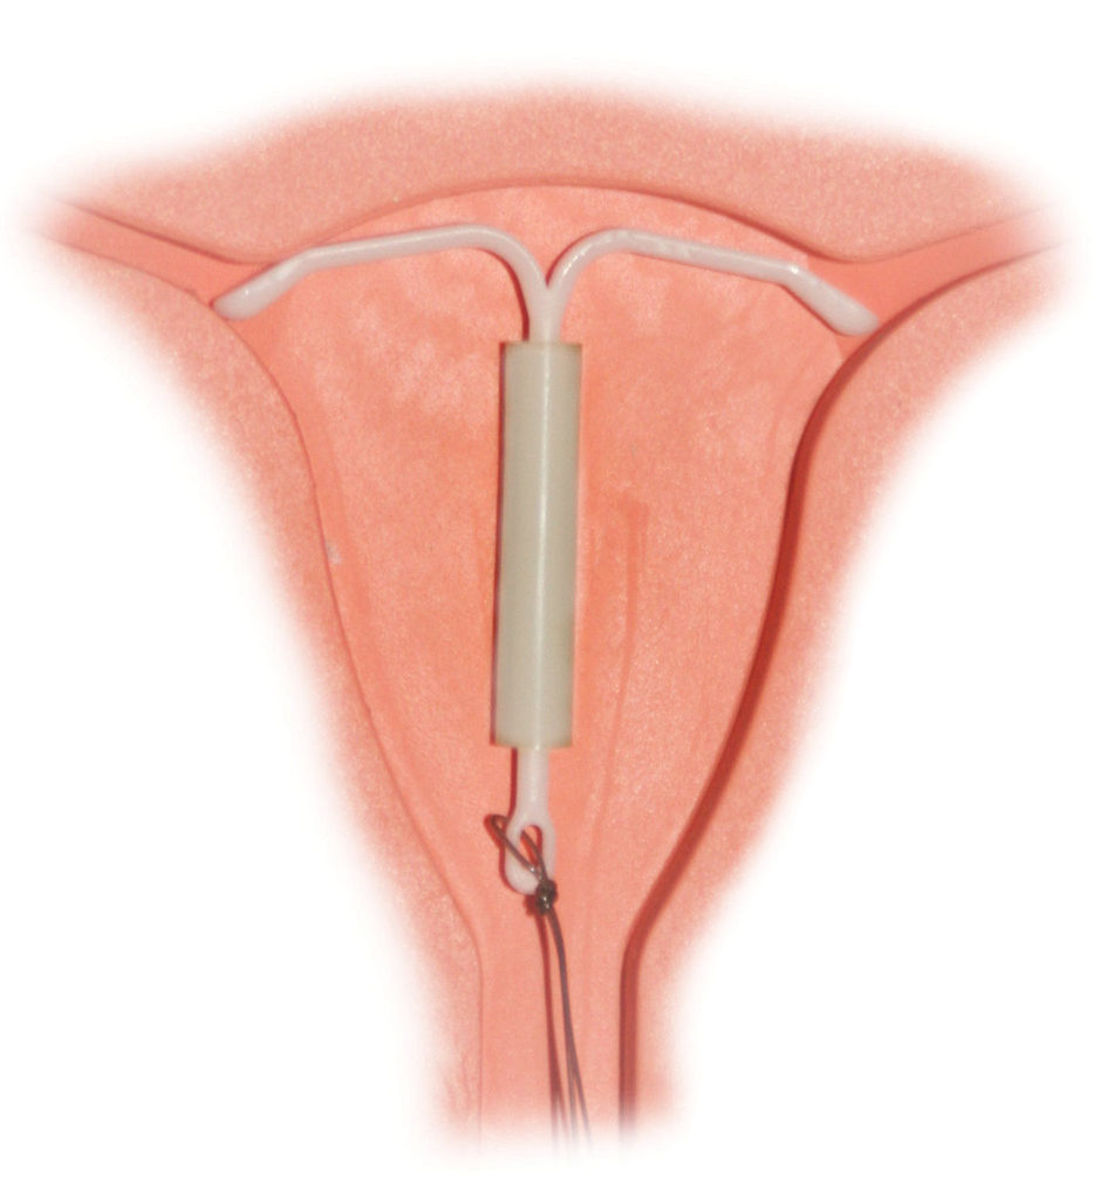 Mirena IUD in a anatomical model